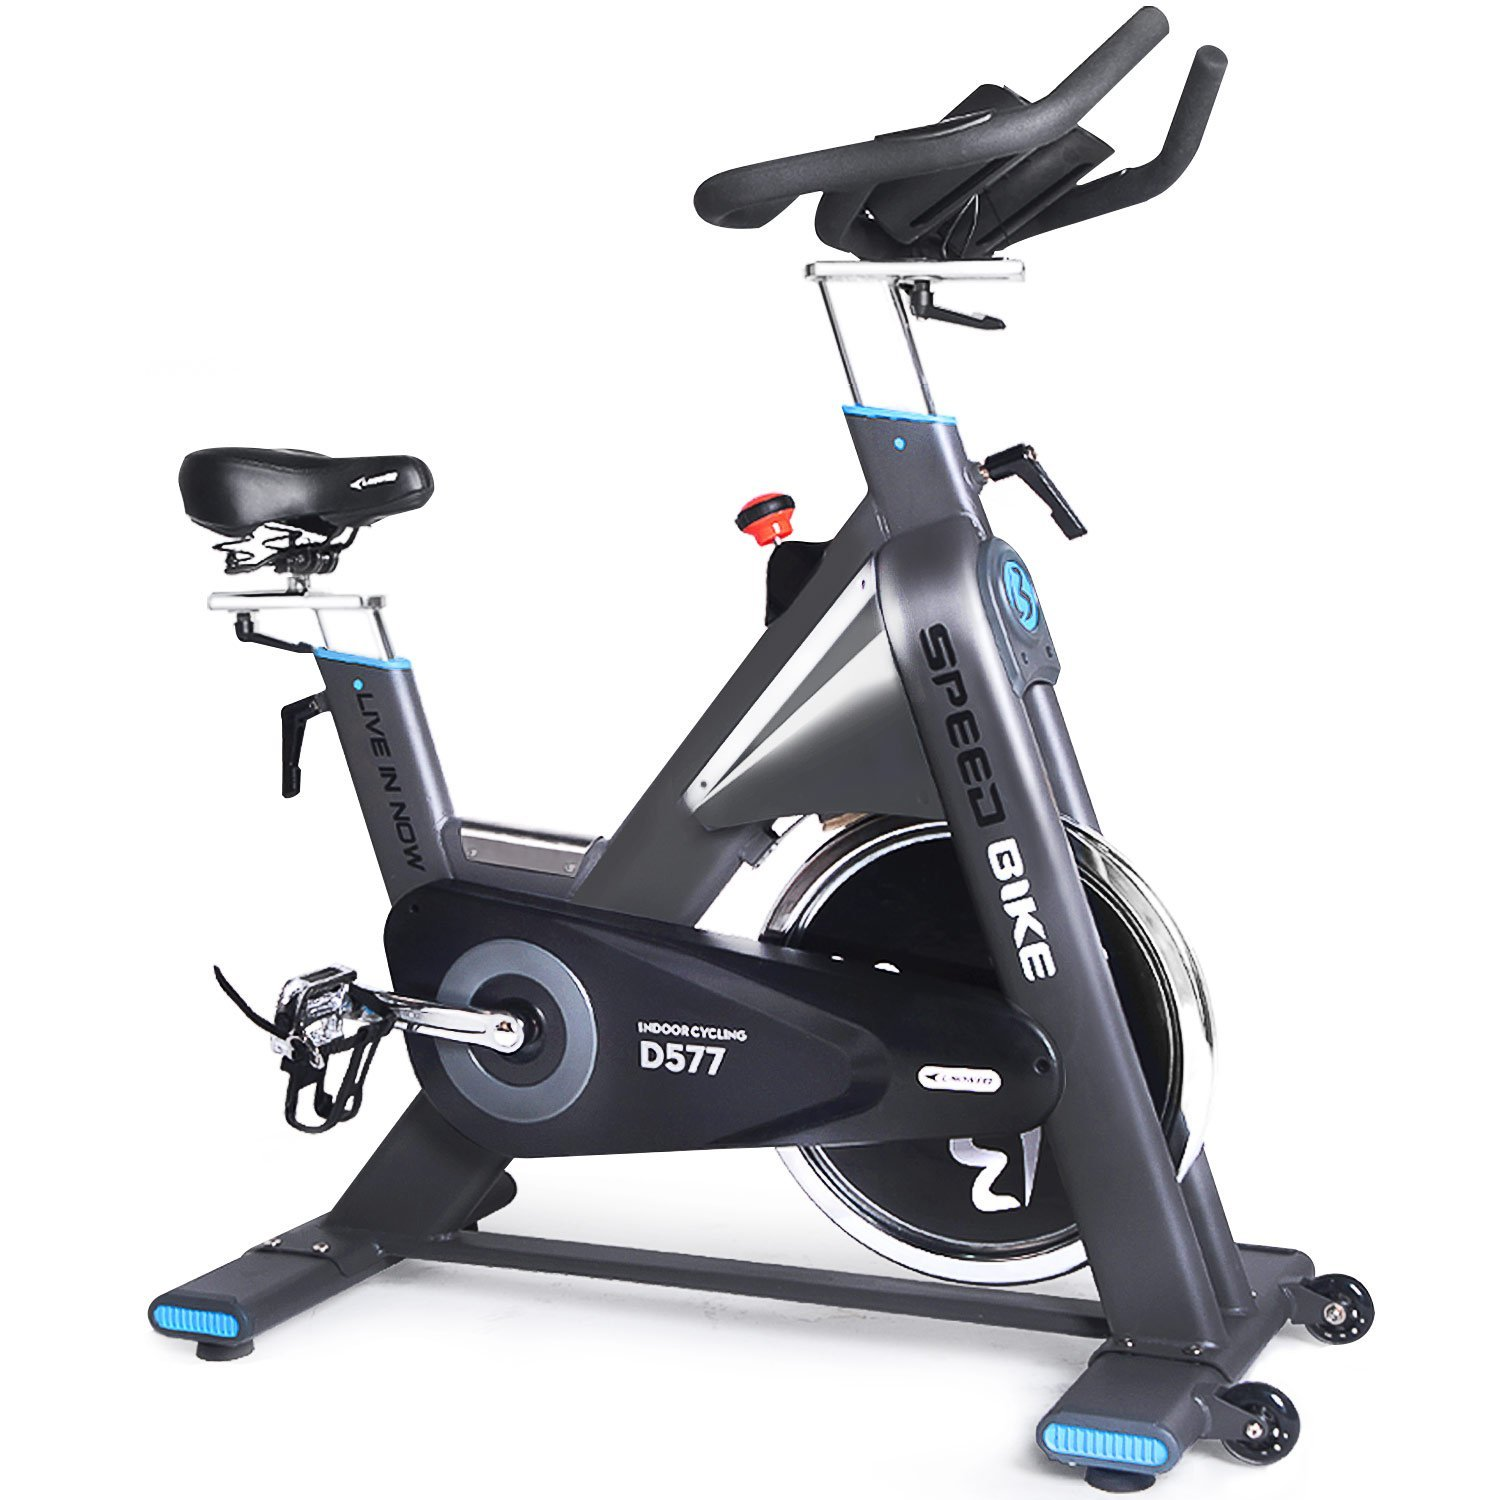 Pro Indoor Cycle Trainer LD577